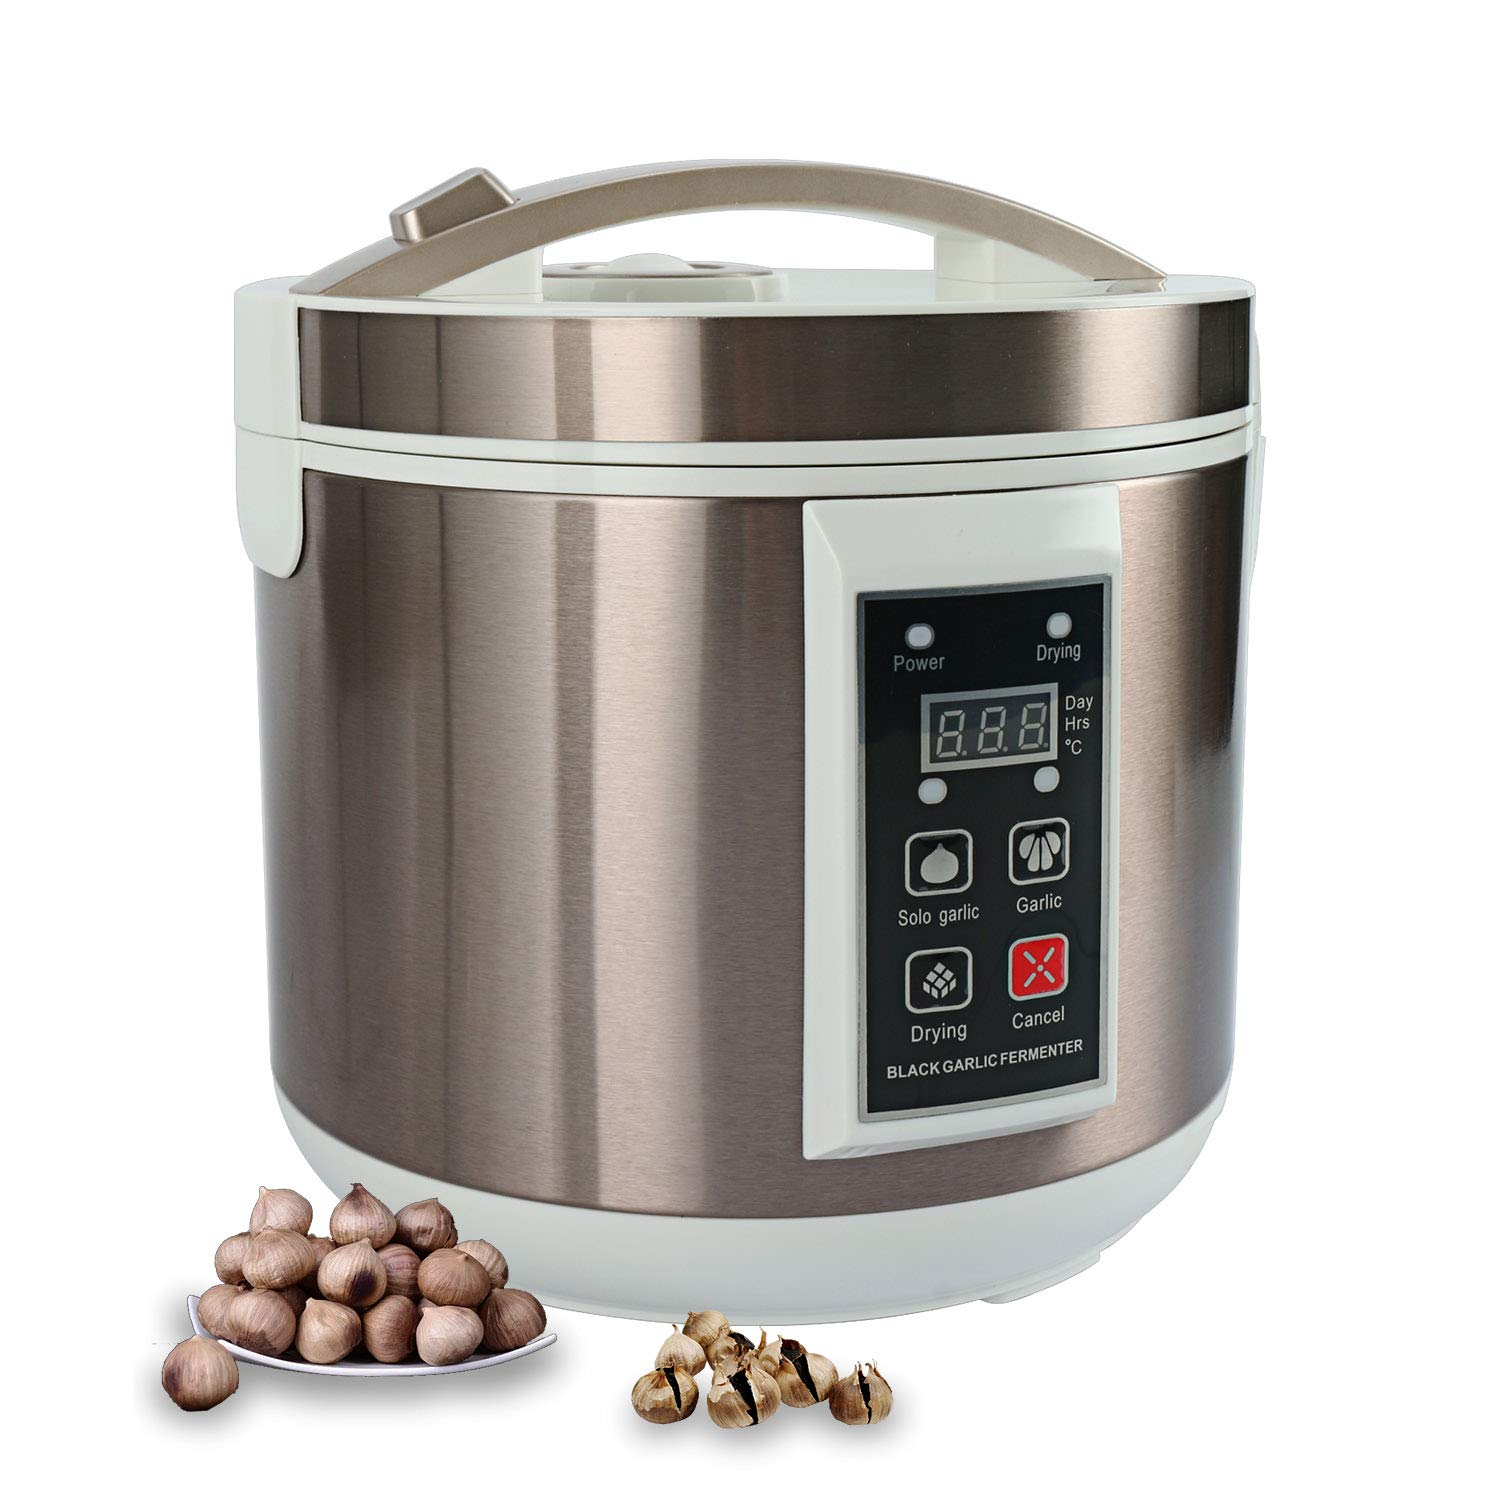 Homend 5L Black Garlic Fermenter Full Automatic Intelligent Control Garlics Maker Multiple Clove Garlic DIY Cooker